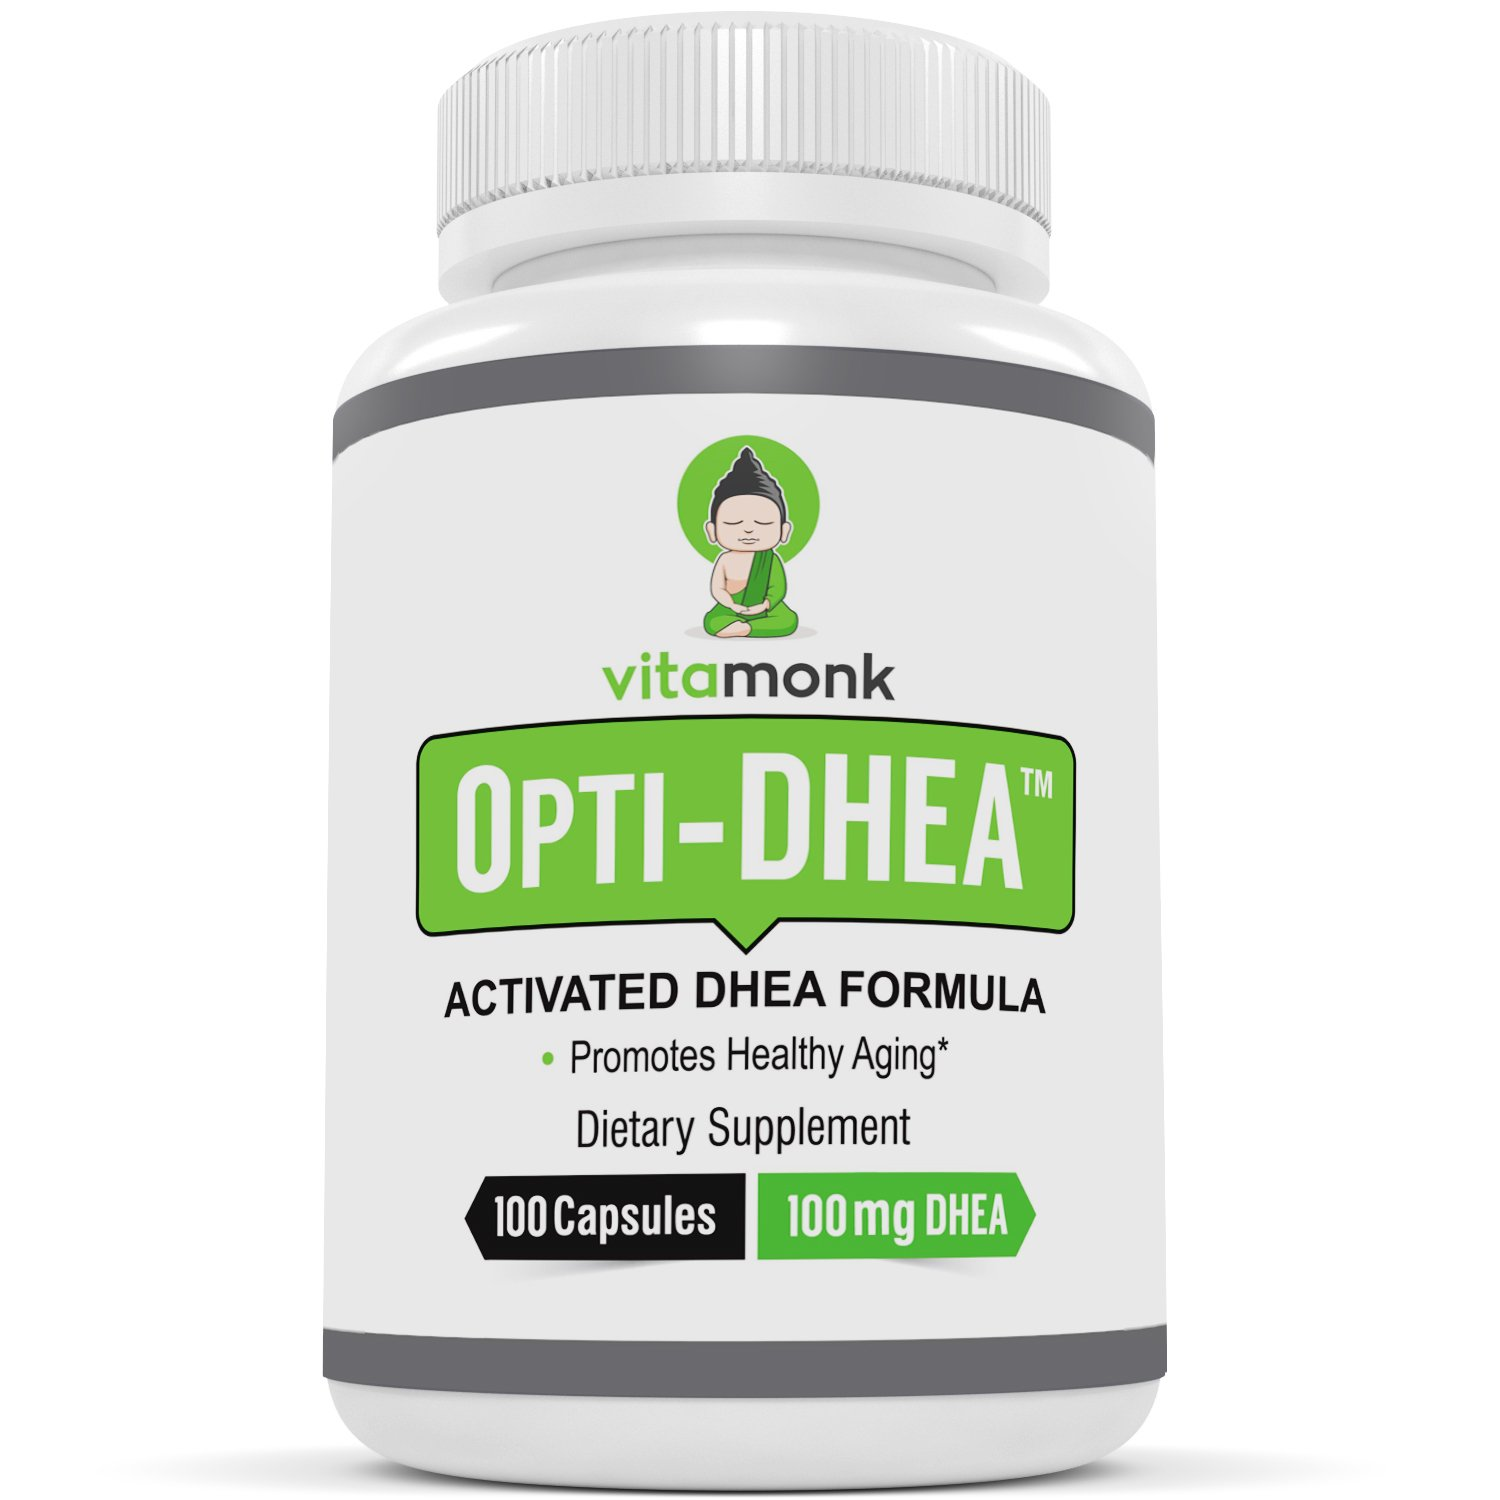 OptiDHEA™ 100mg Bio-Enhanced DHEA Supplement - Giving You The Safest and Highest Absorption DHEA 100 Milligram Capsules On The Market - Micronized Health Supplements By Vitamonk - For Men and Women